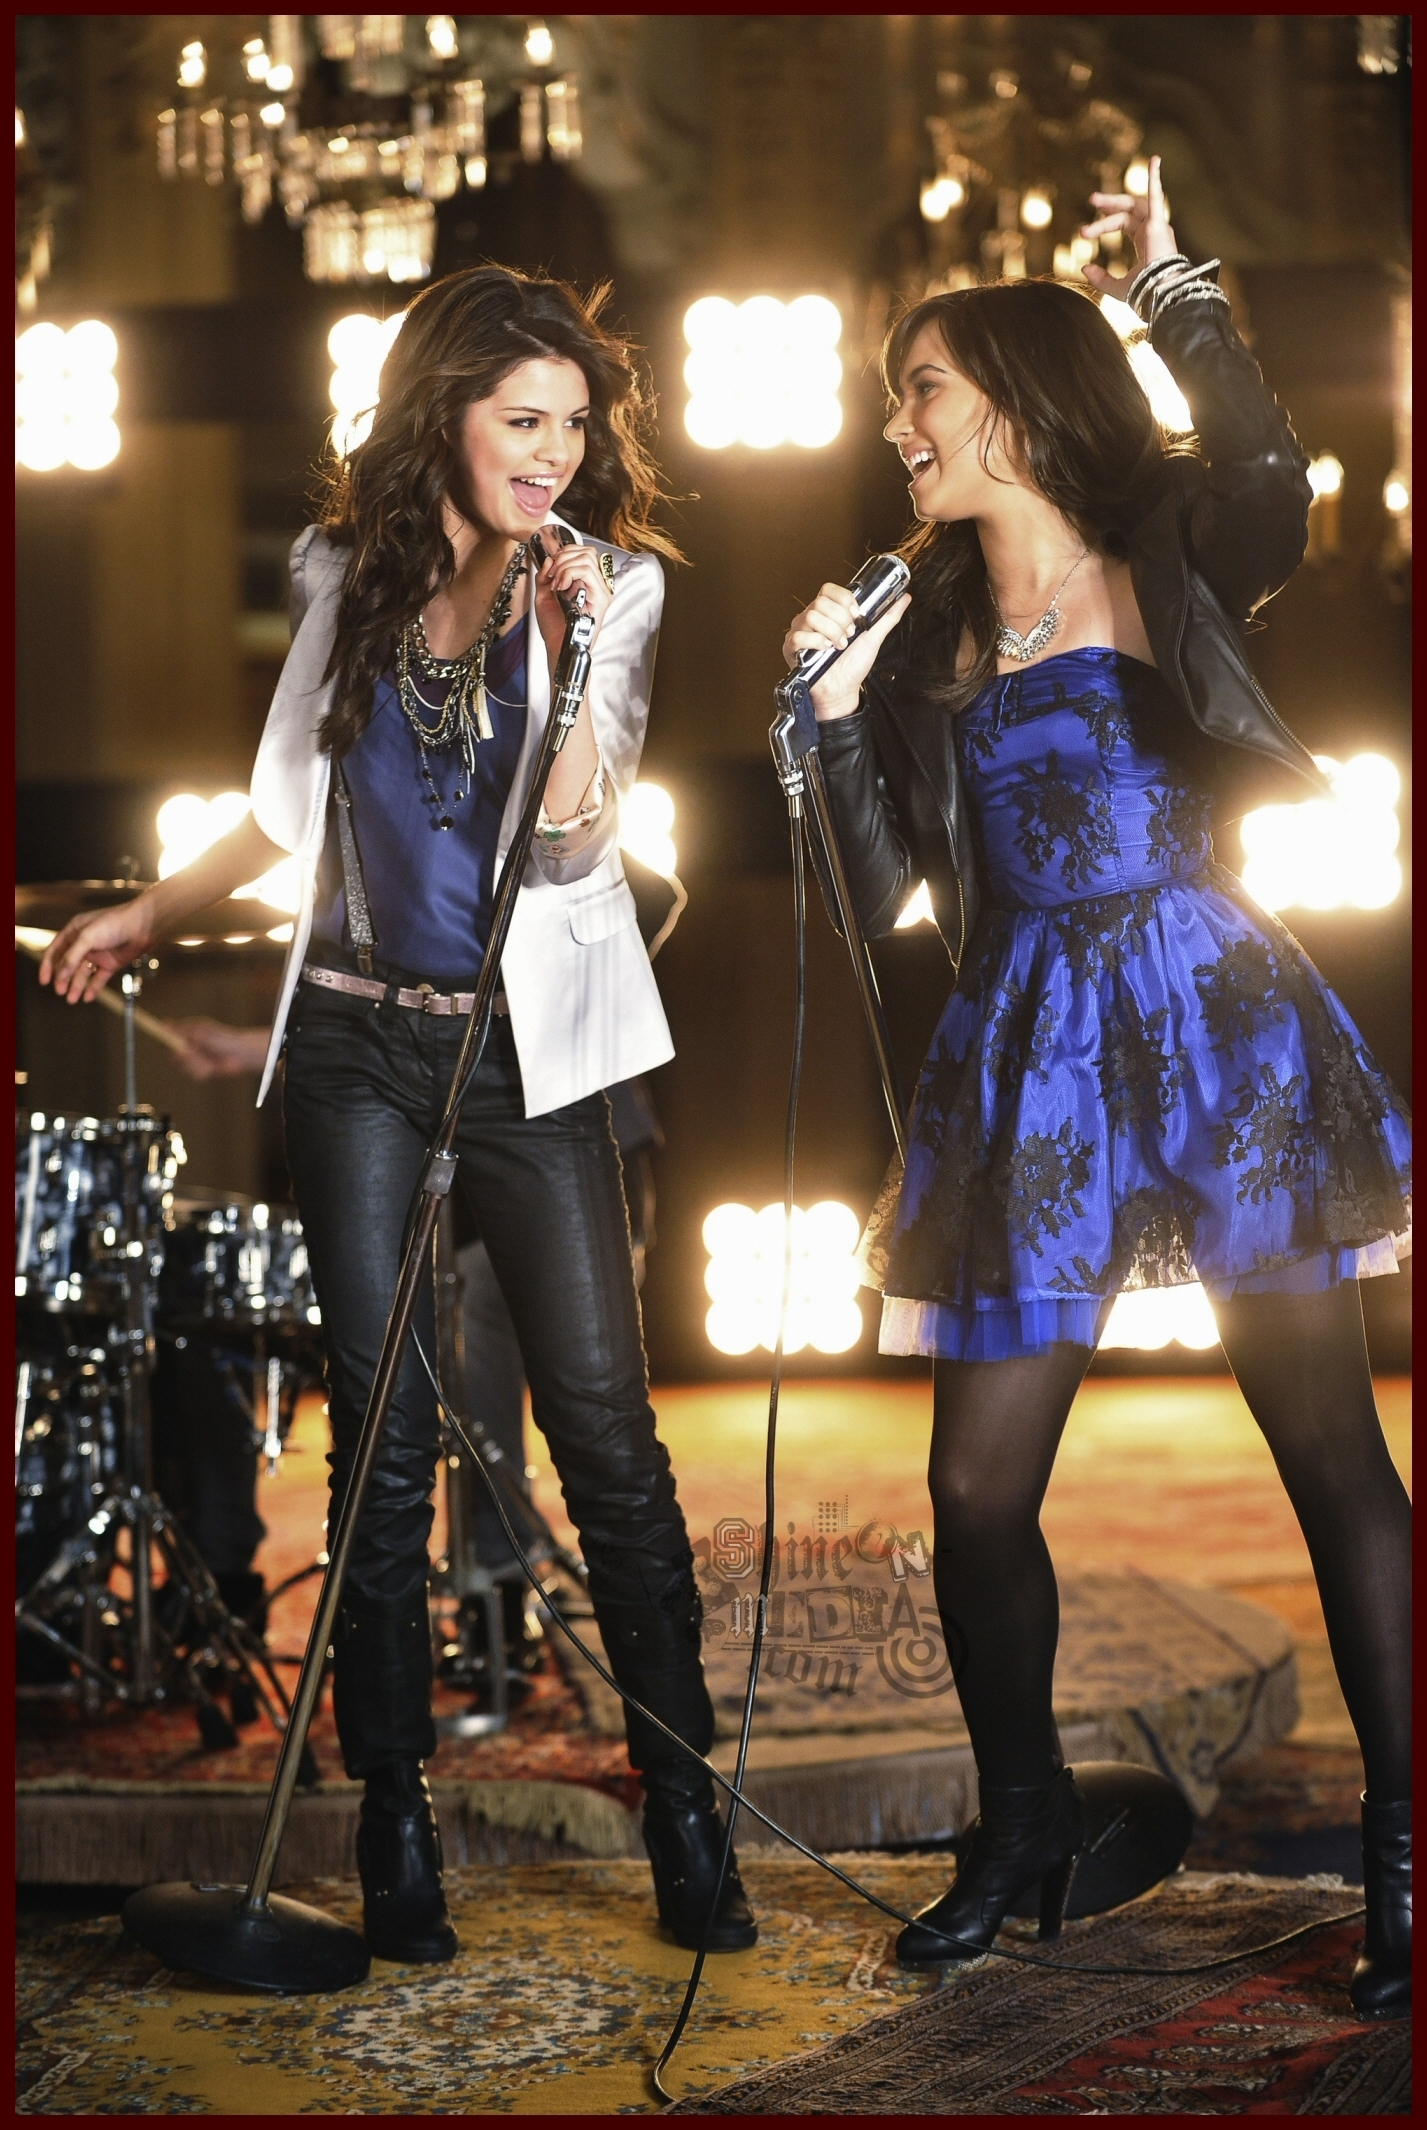 One and the same,VideoShooting - Selena Gomez and Demi Lovato Photo (17937351) - Fanpop